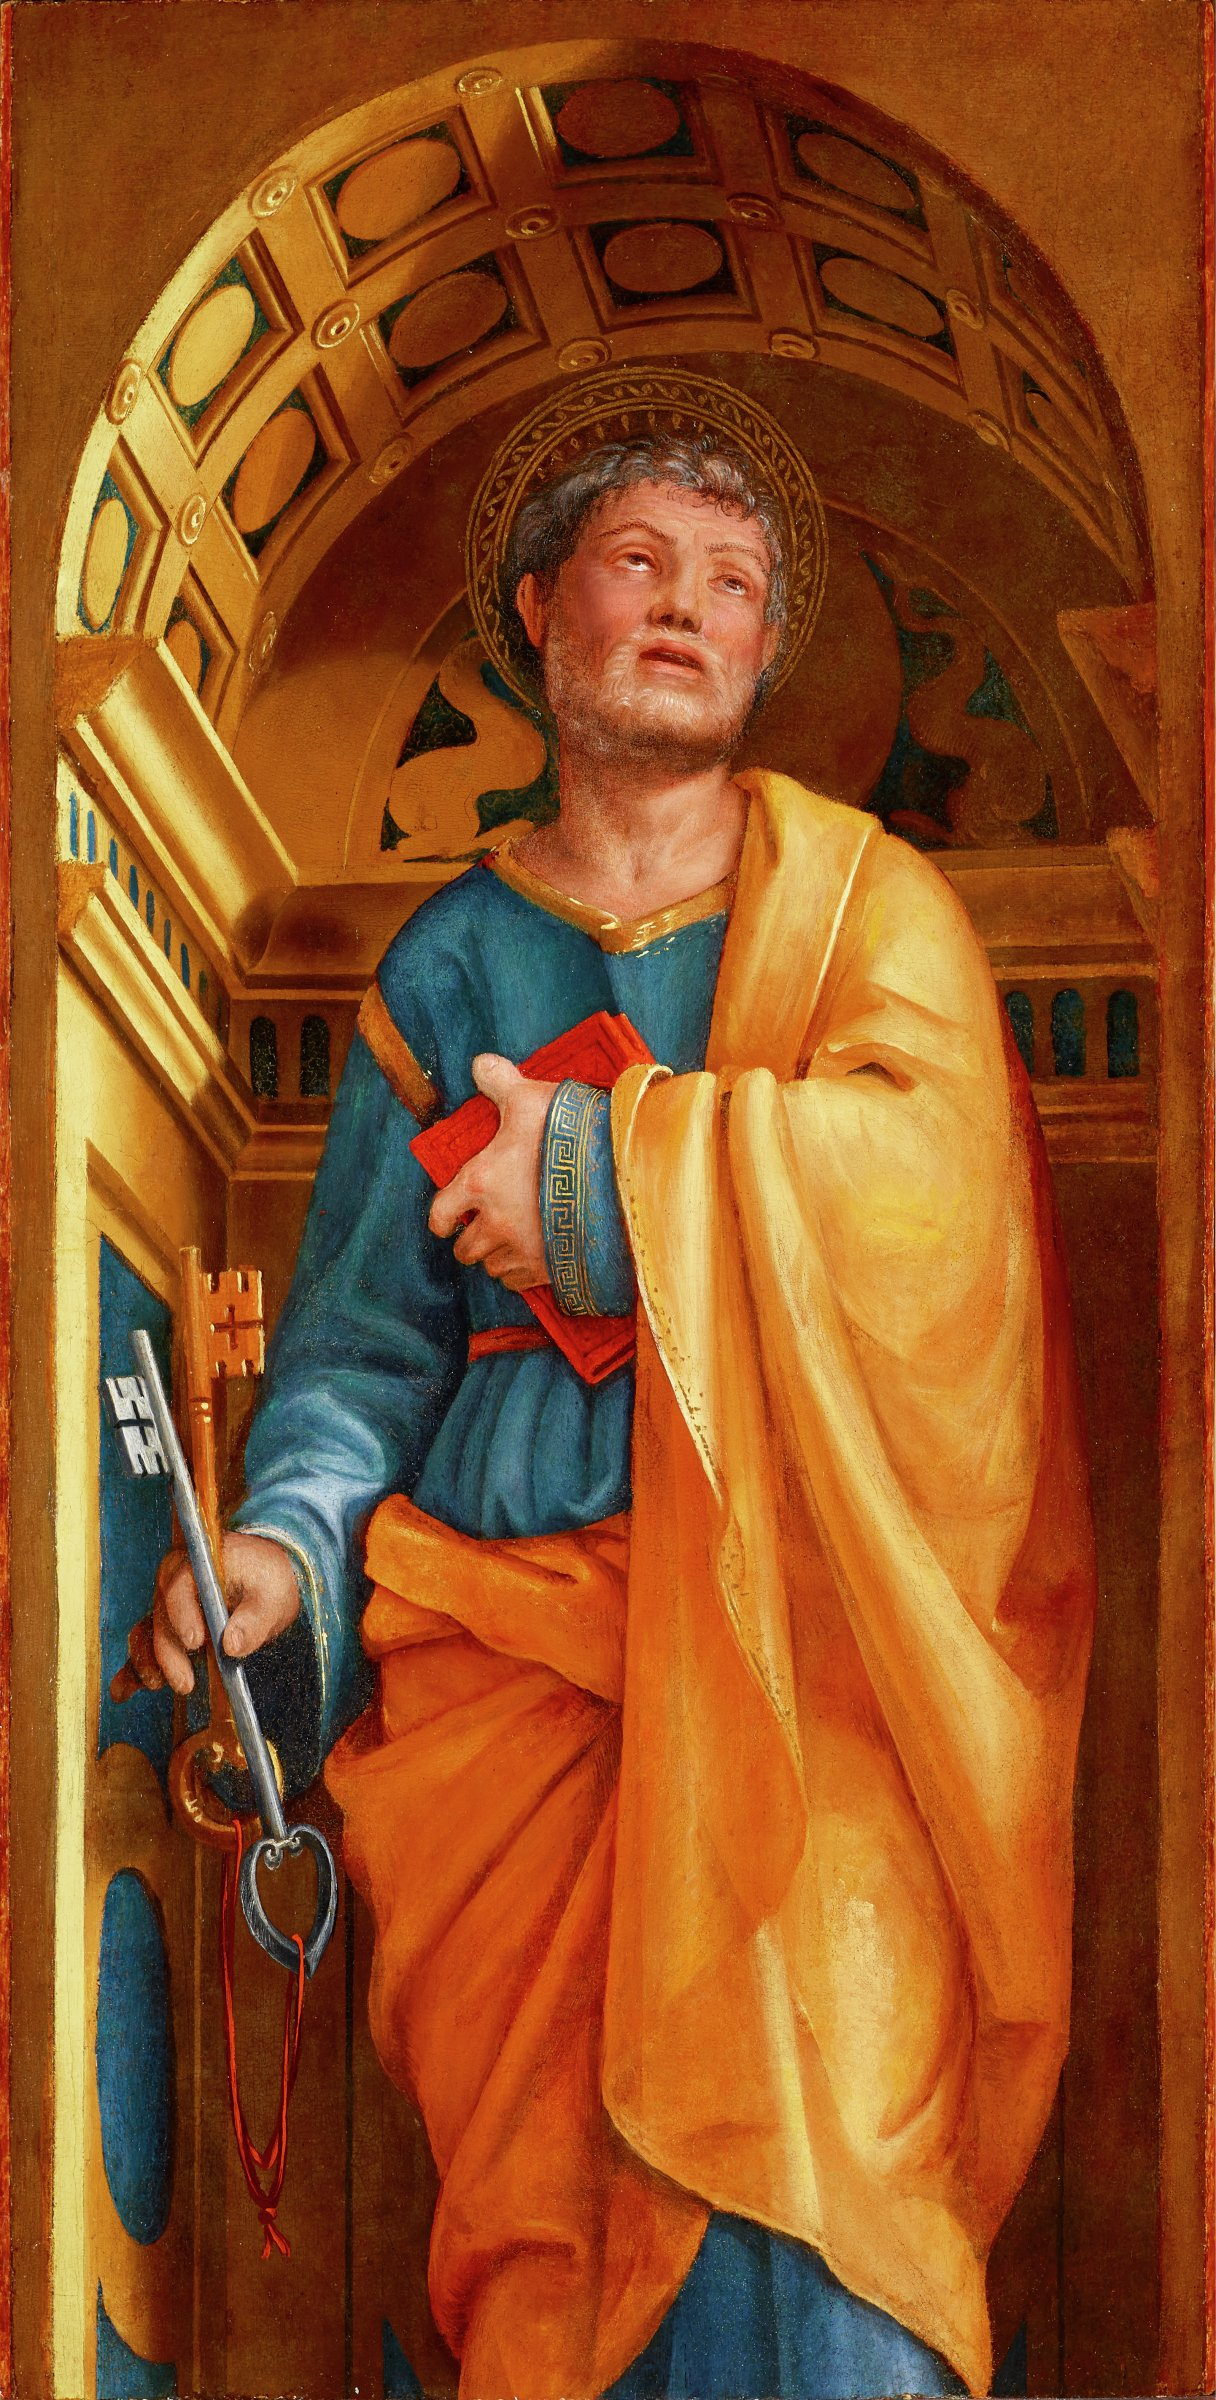 Saint Peter, with a key in one hand and a book in the other, stands in a vaulted architectural space.